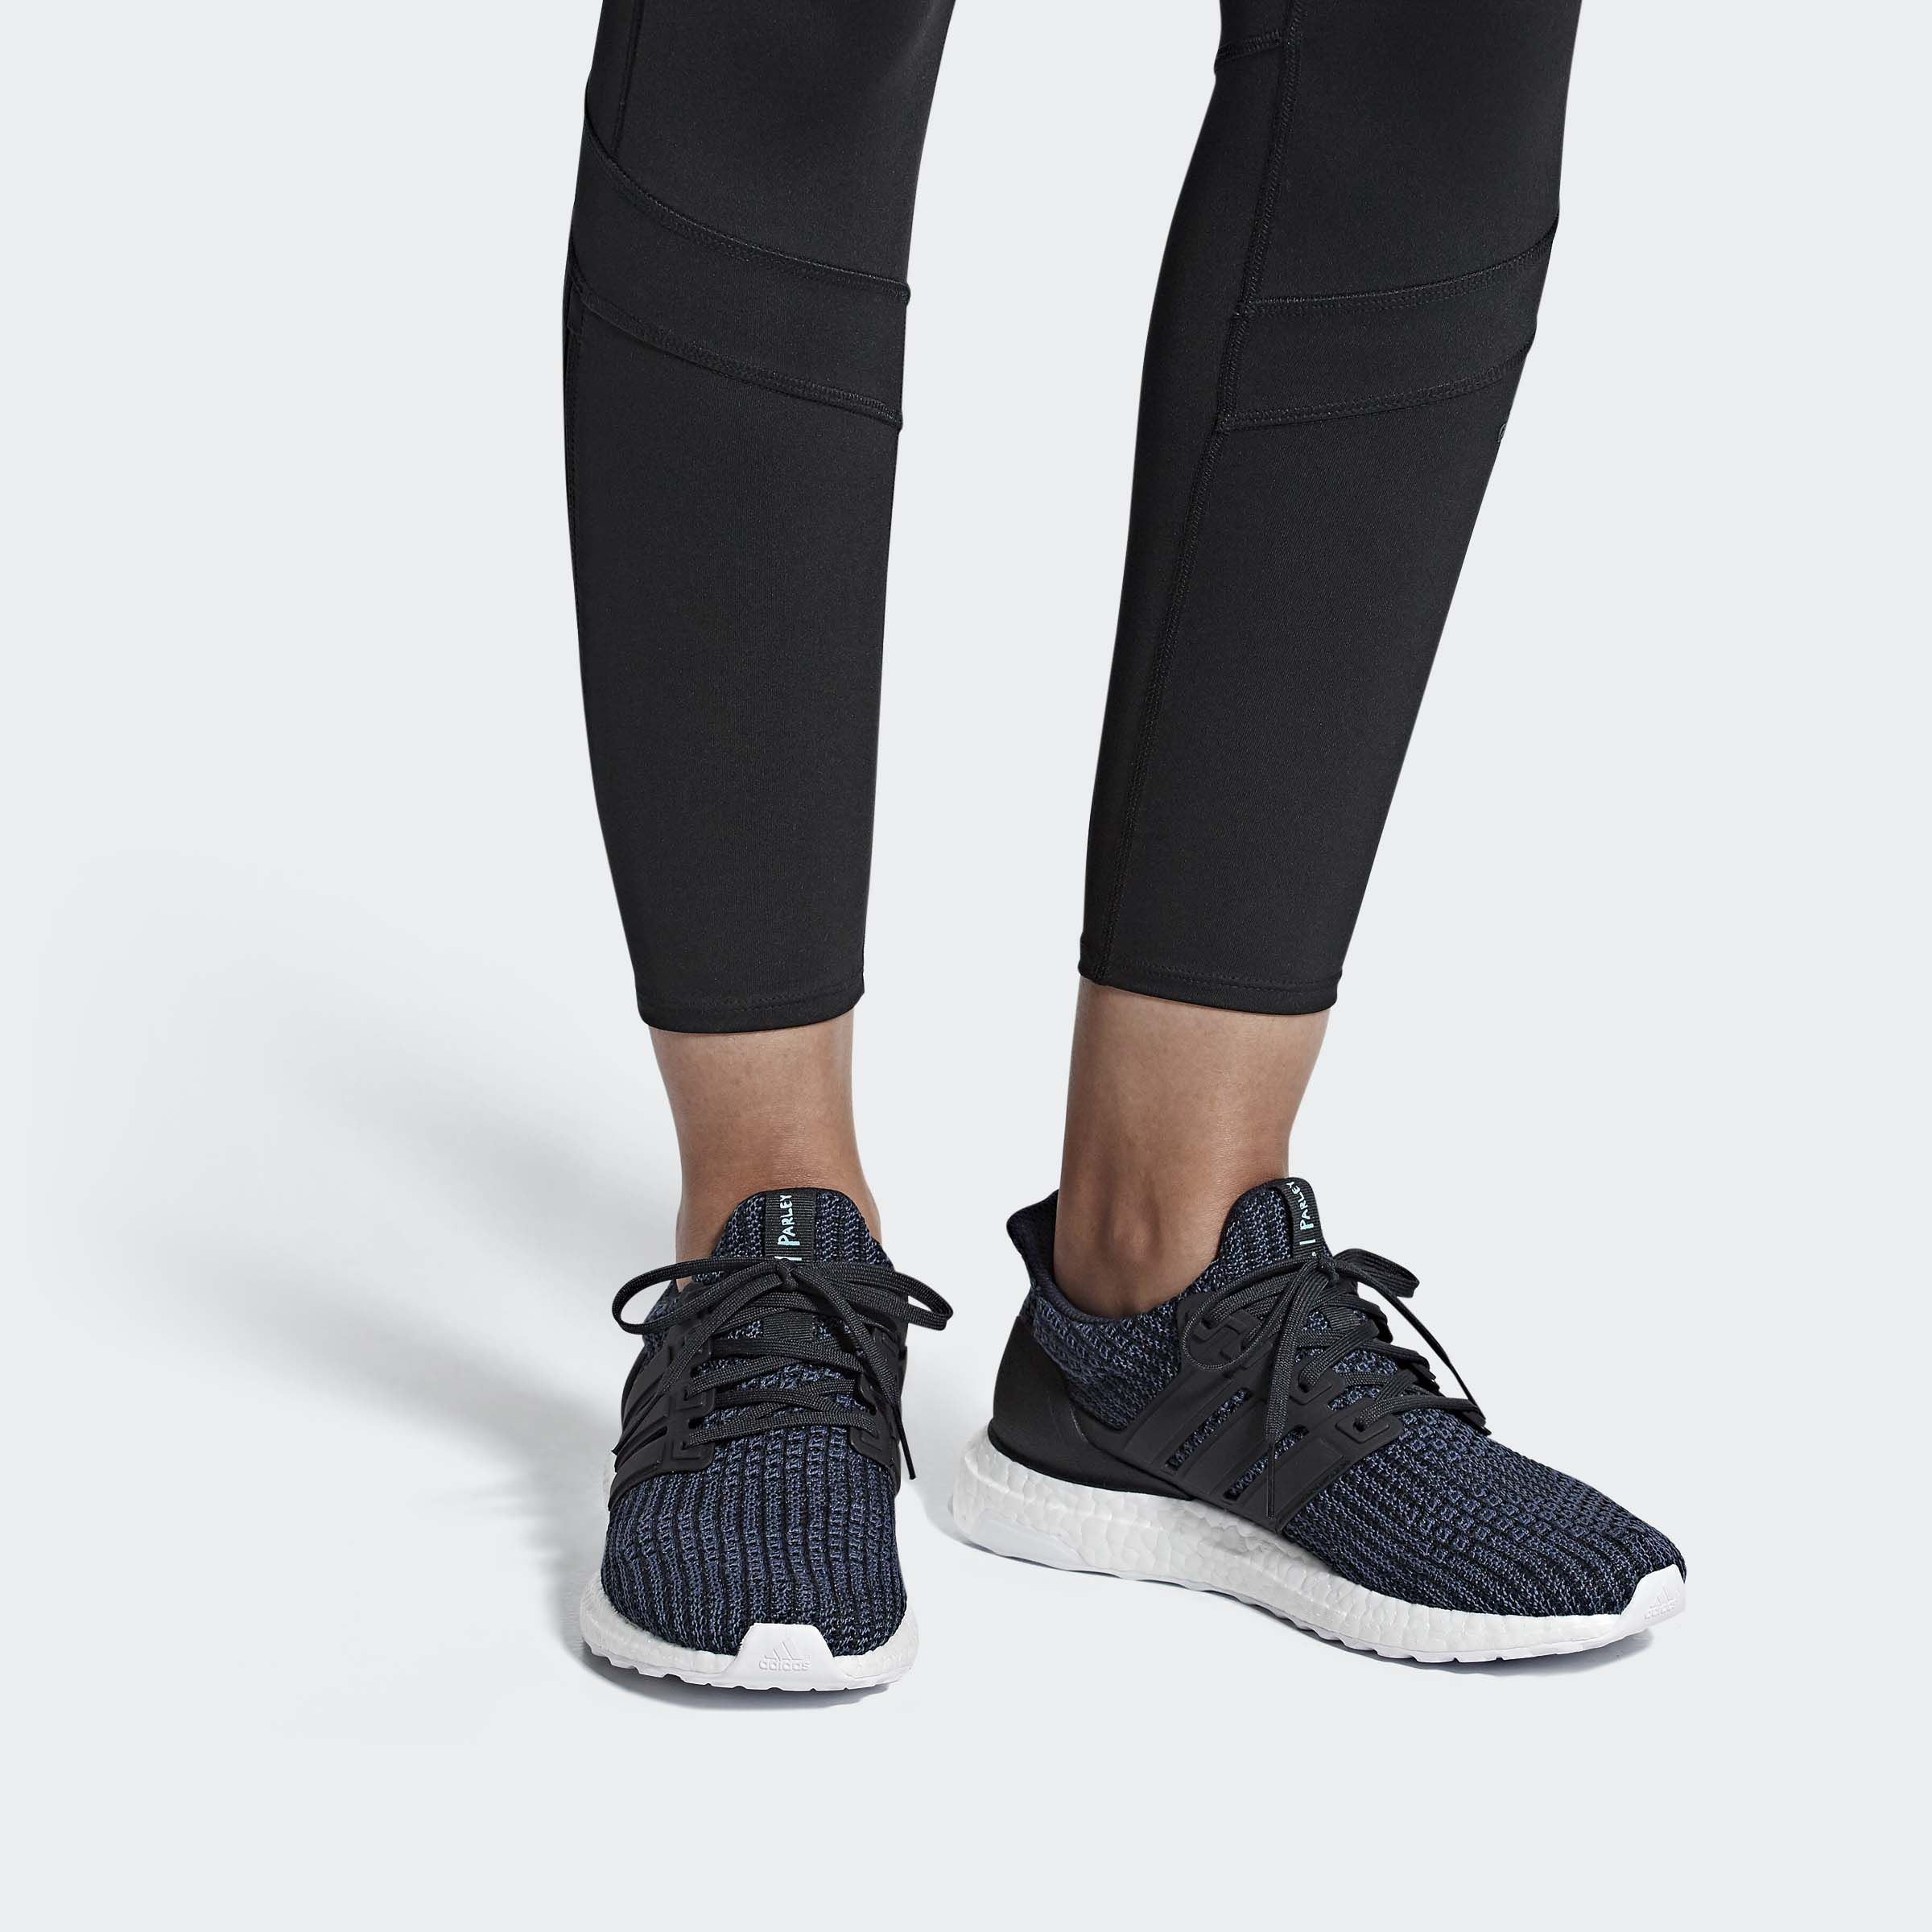 de33aaf96 Runners Need have a flash sale on Adidas running shoes